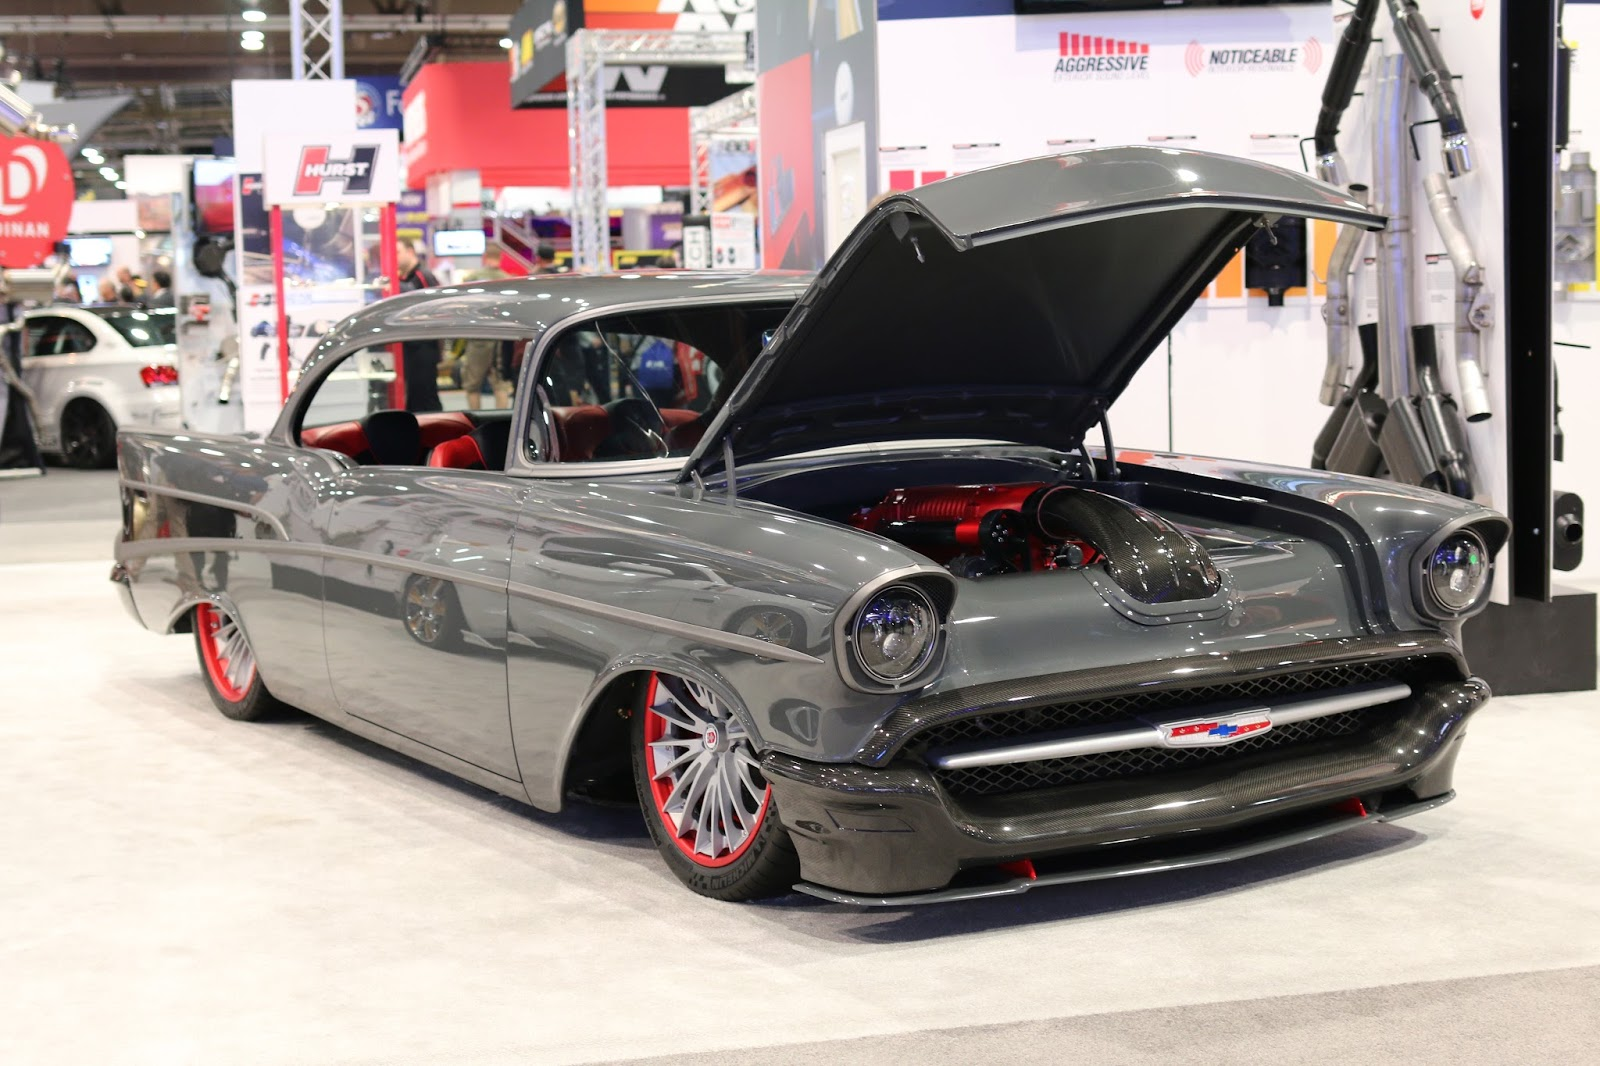 Covering Classic Cars : Our Top Custom Cars And Hot Rods